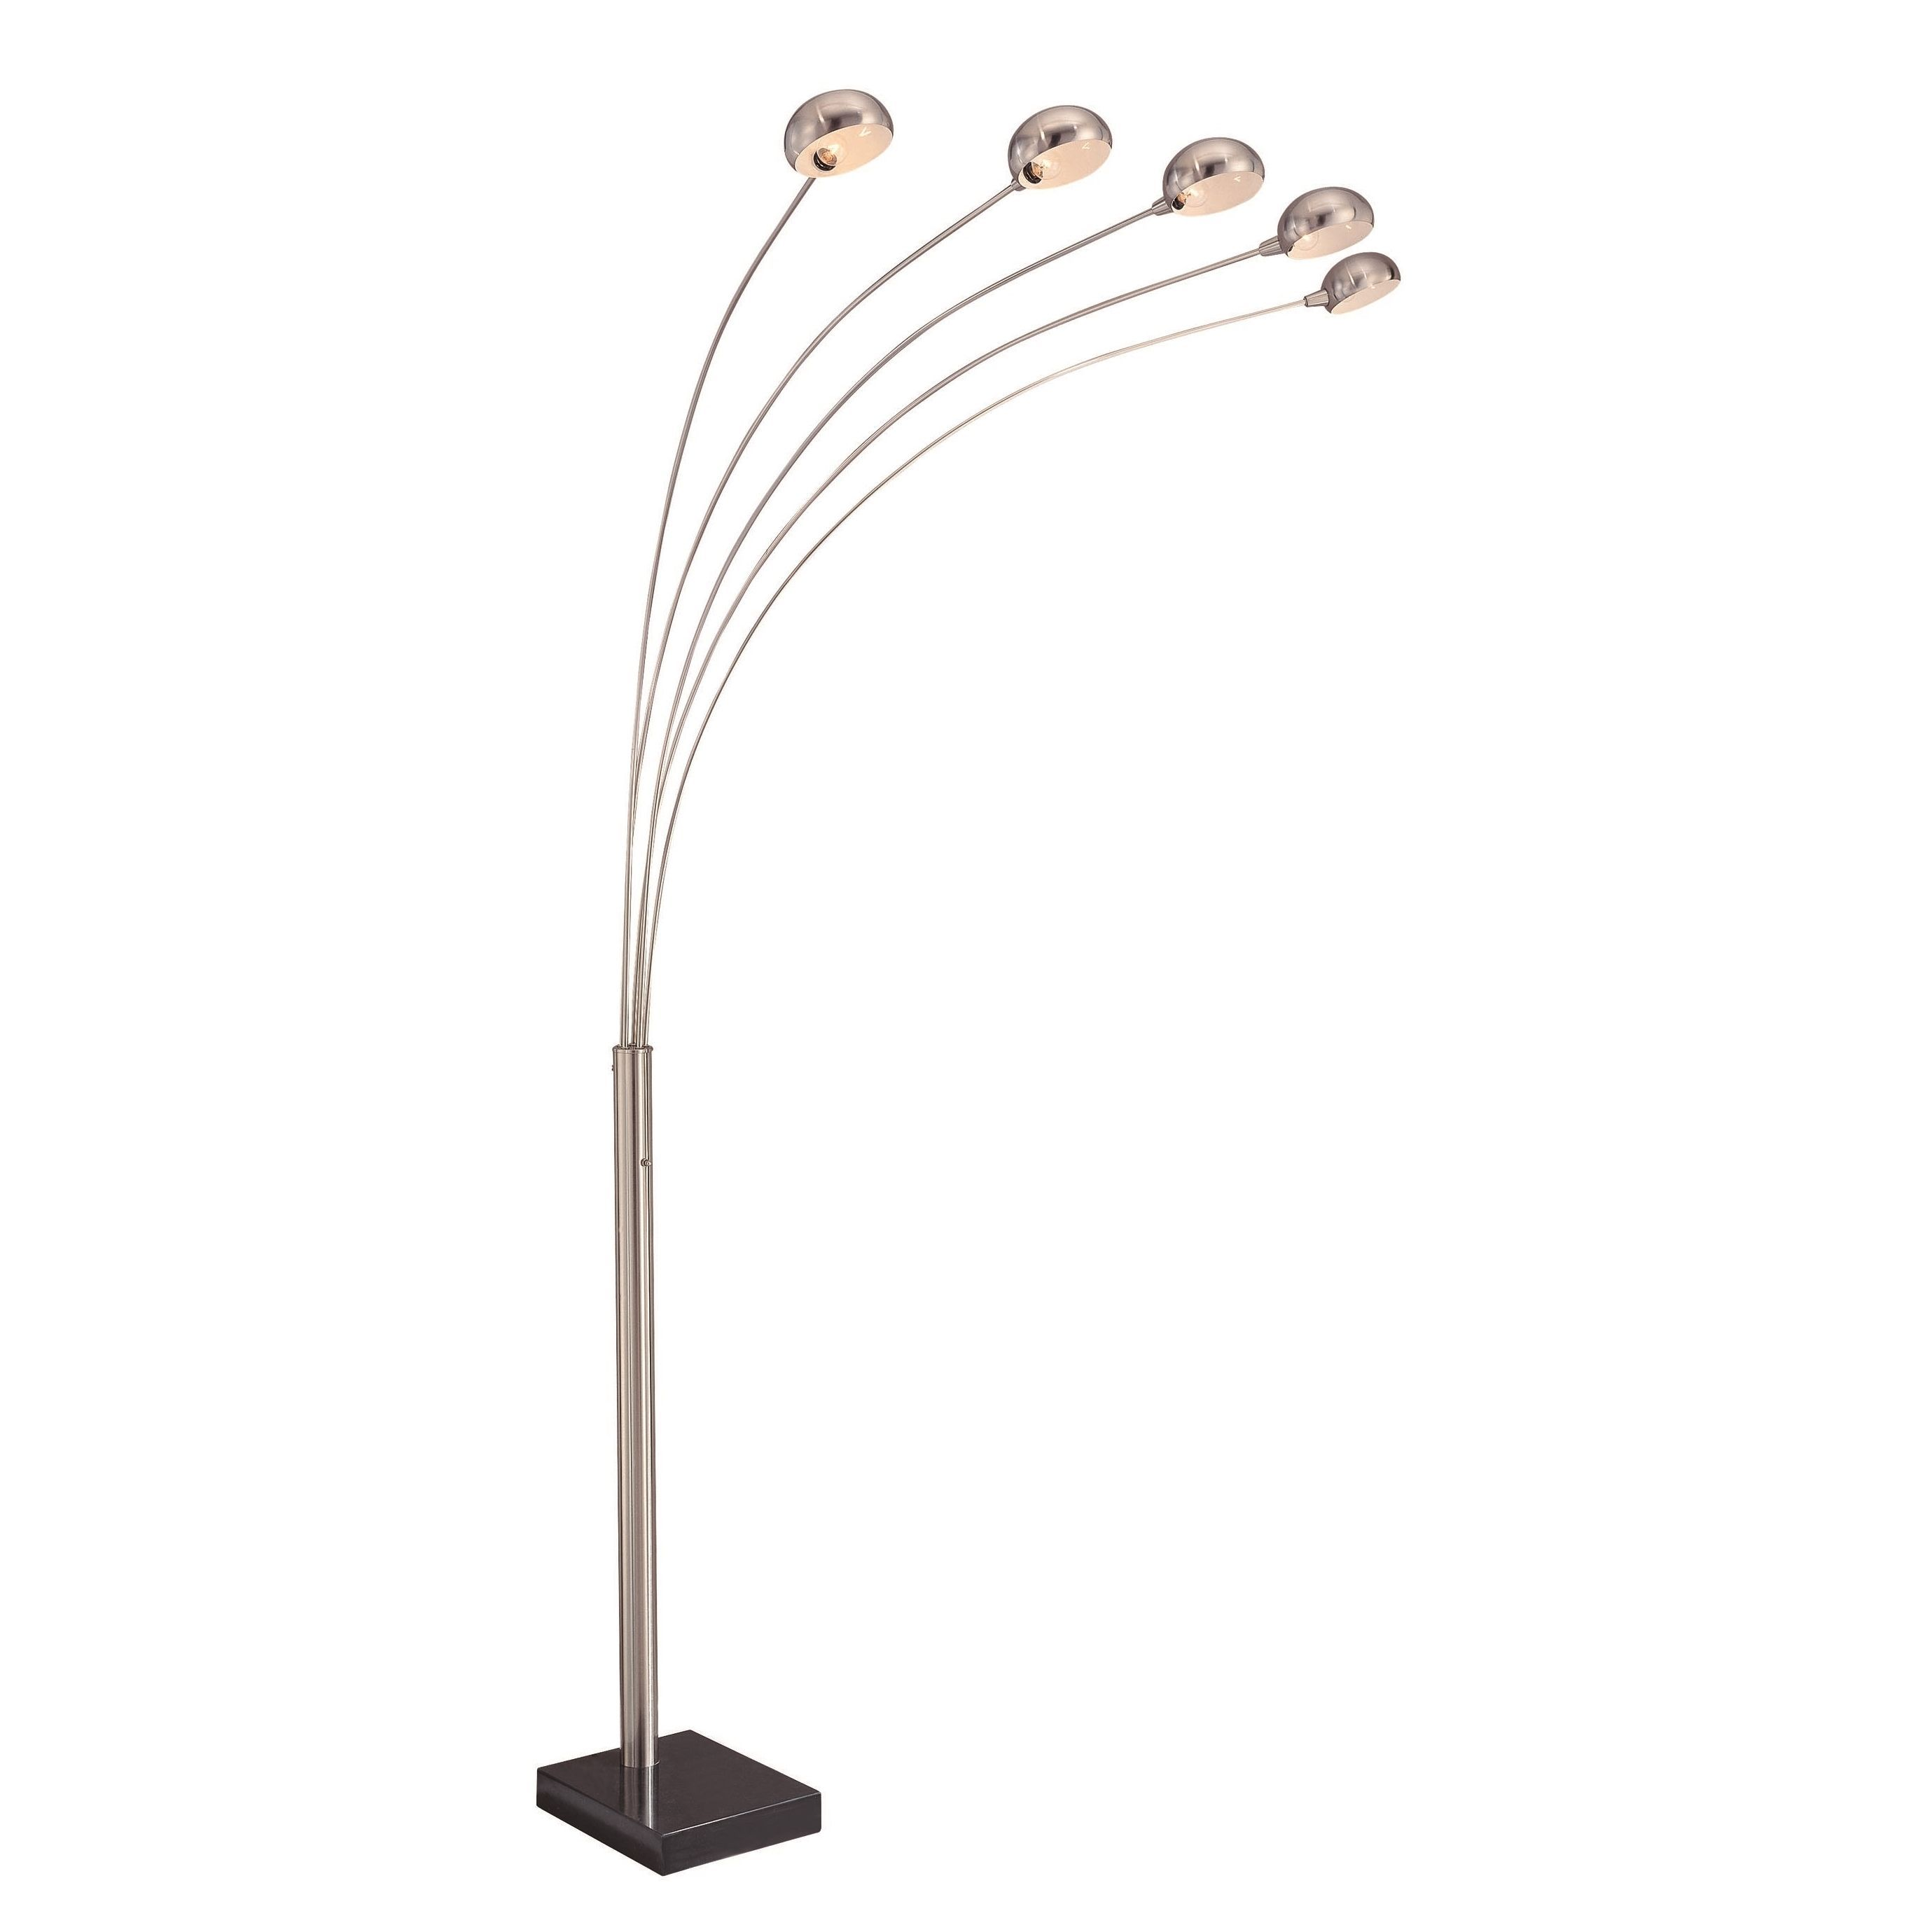 bulb photos light lovely store multi pictures floor lamp march brightech com clubanfi of